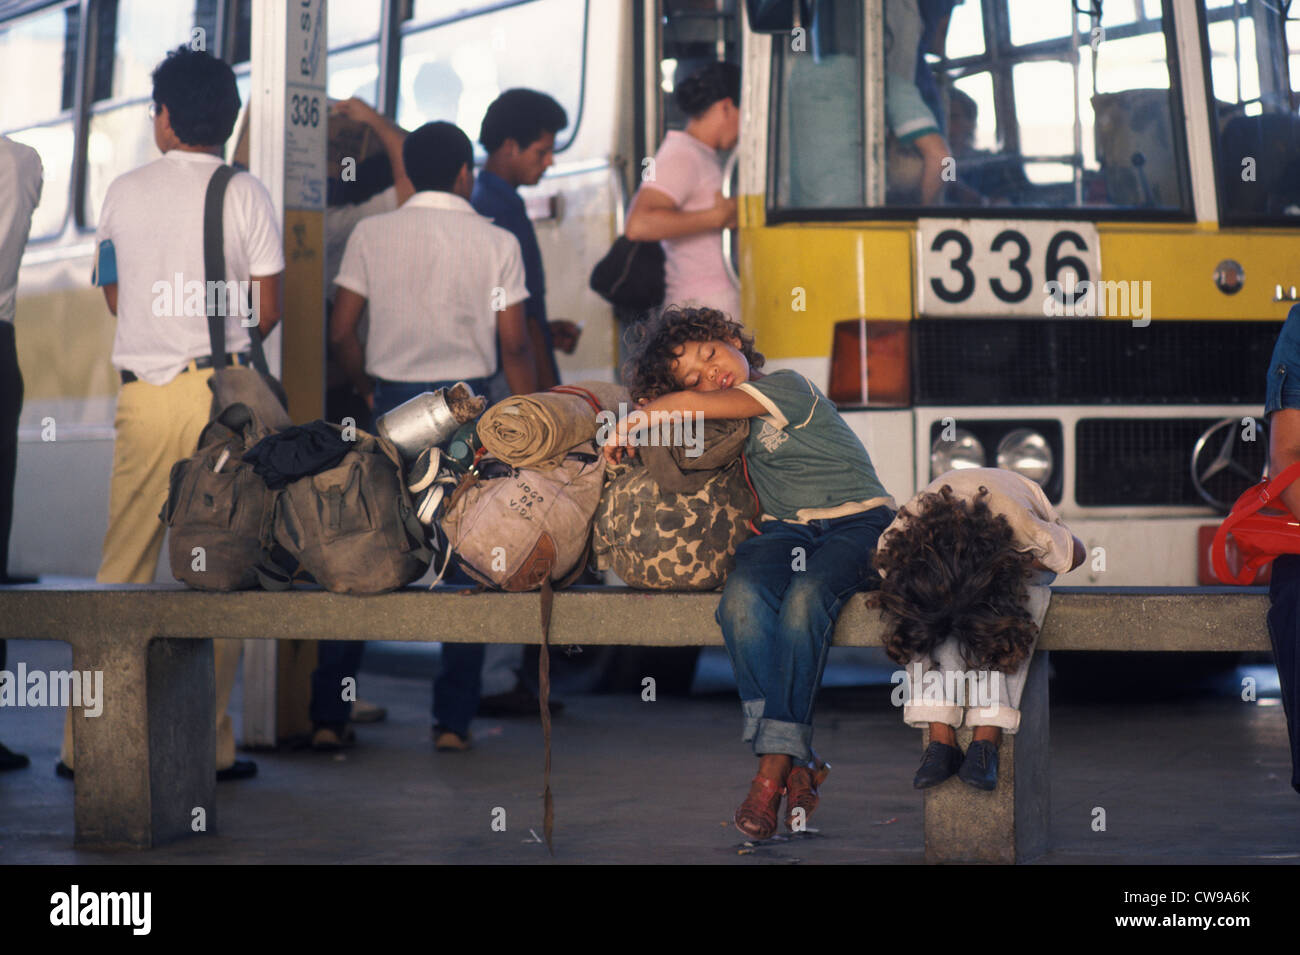 Homeless family with possessions at bus station Brazilia Brazil South America. HOMER SYKES - Stock Image